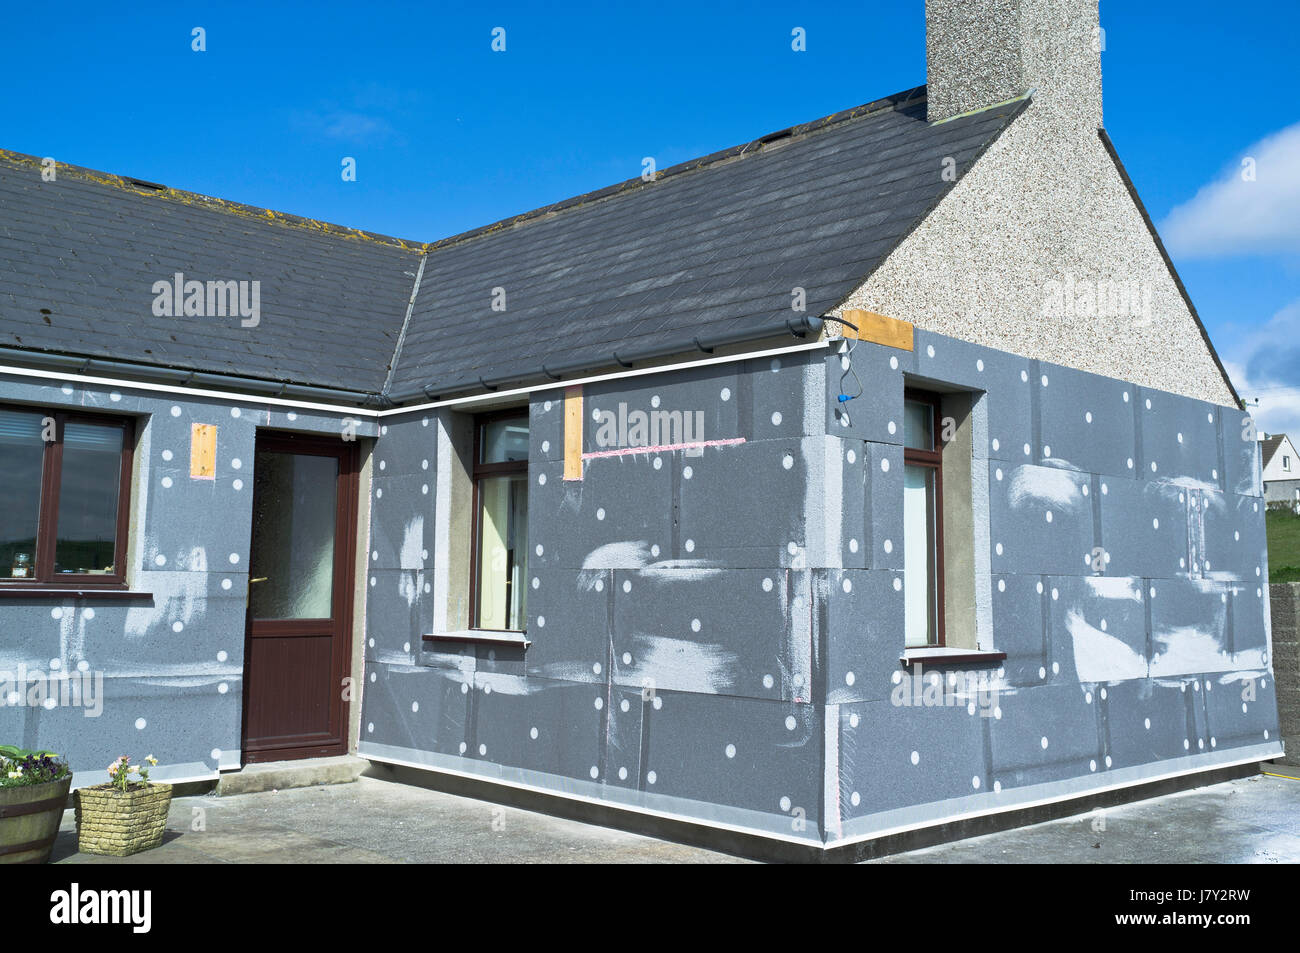 foam insulation house stockfotos foam insulation house bilder alamy. Black Bedroom Furniture Sets. Home Design Ideas